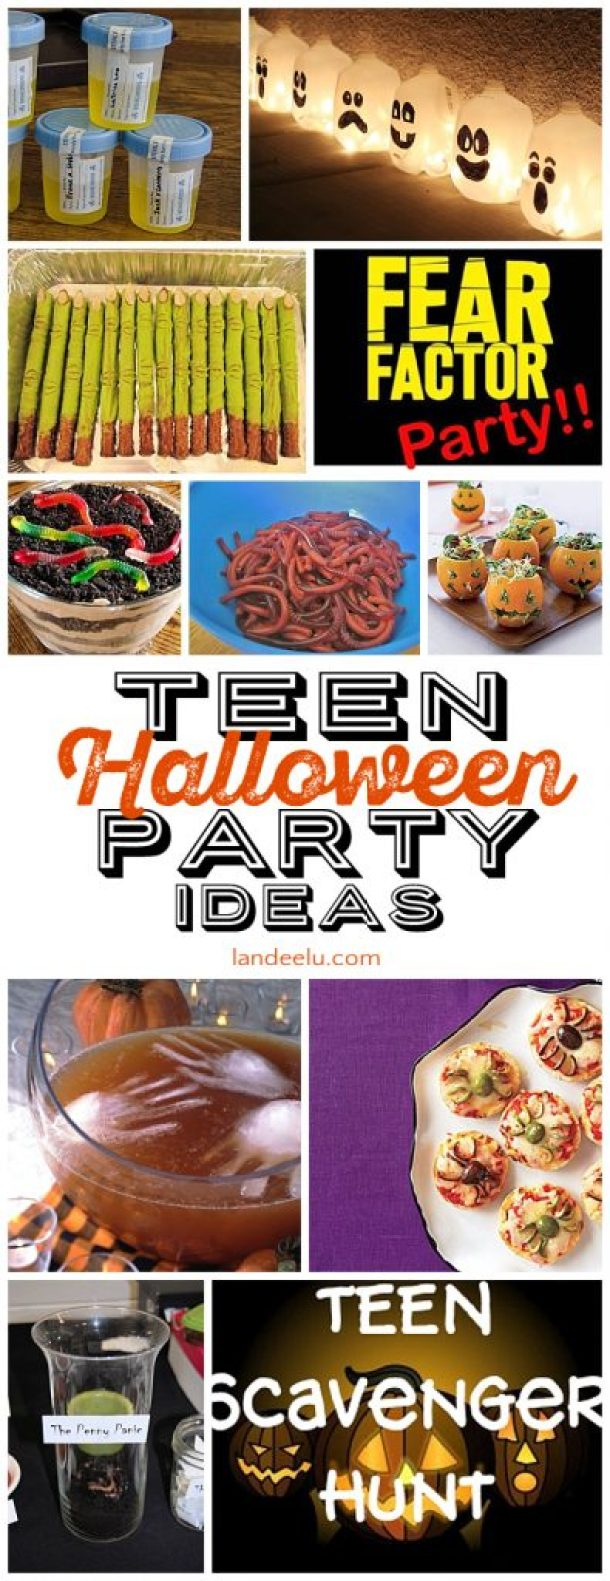 teen halloween party ideas | landeelu